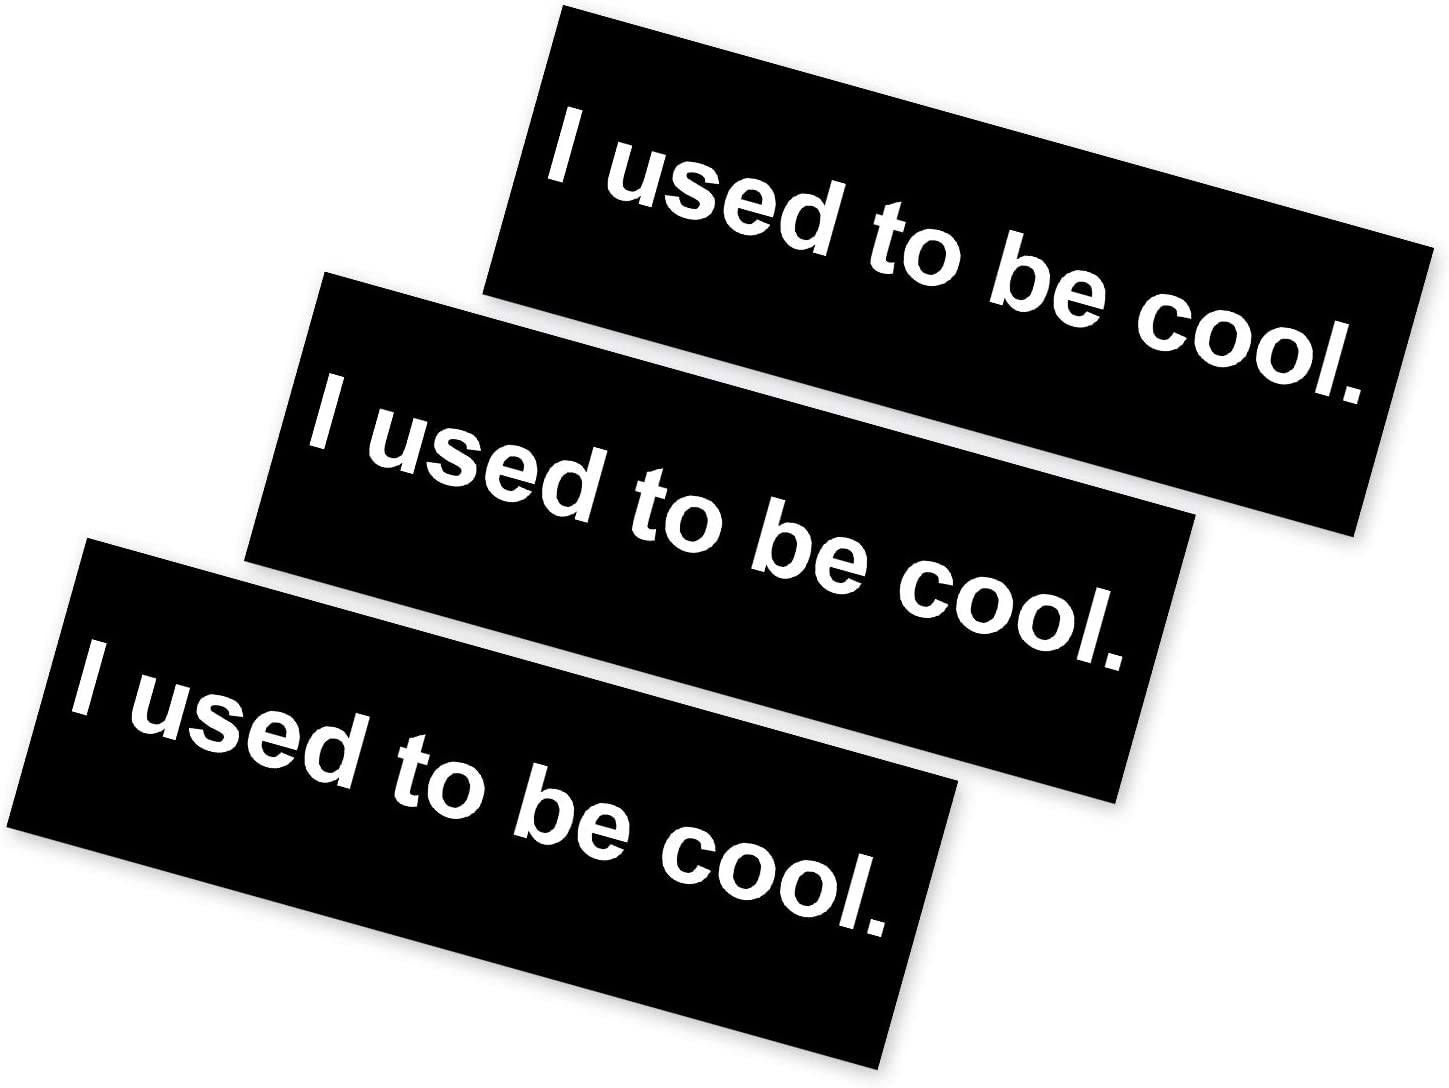 High Supply 9x3 I Used to Be Cool 3-Pack Bumper Sticker with White Text on Black Background Funny Minivan Bumper Sticker